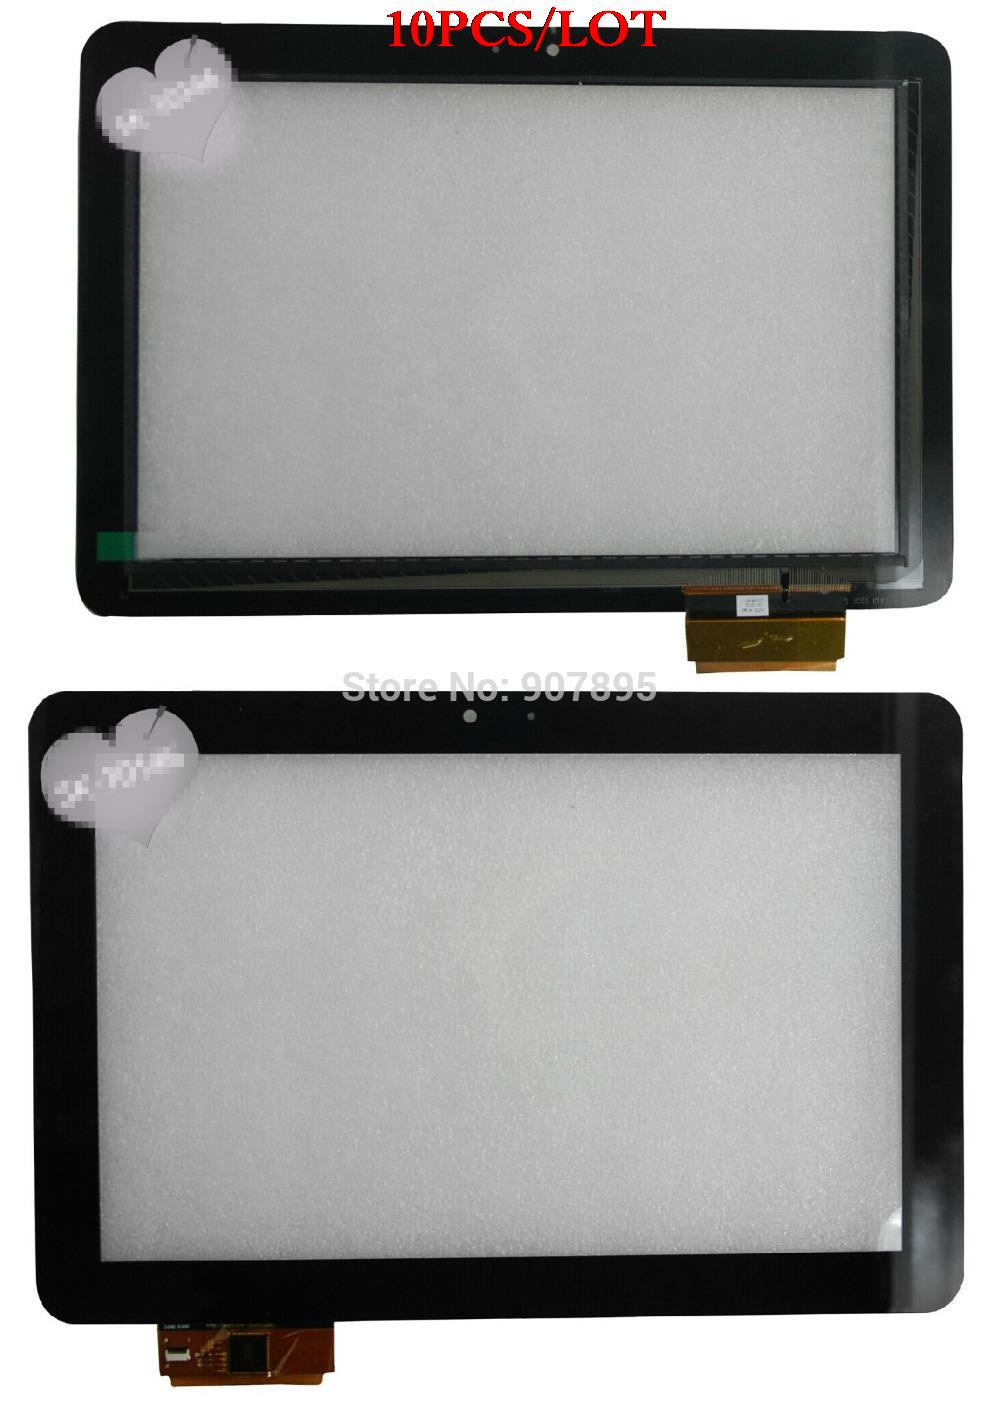 10pcS ACE 10inch ACE-CG10.1A-223-Fpc TYT FPDC-0085A-1 10.1inch capacitive touch screen panel  tablet pc touchscreen 10 1 inch sg6179 fpc